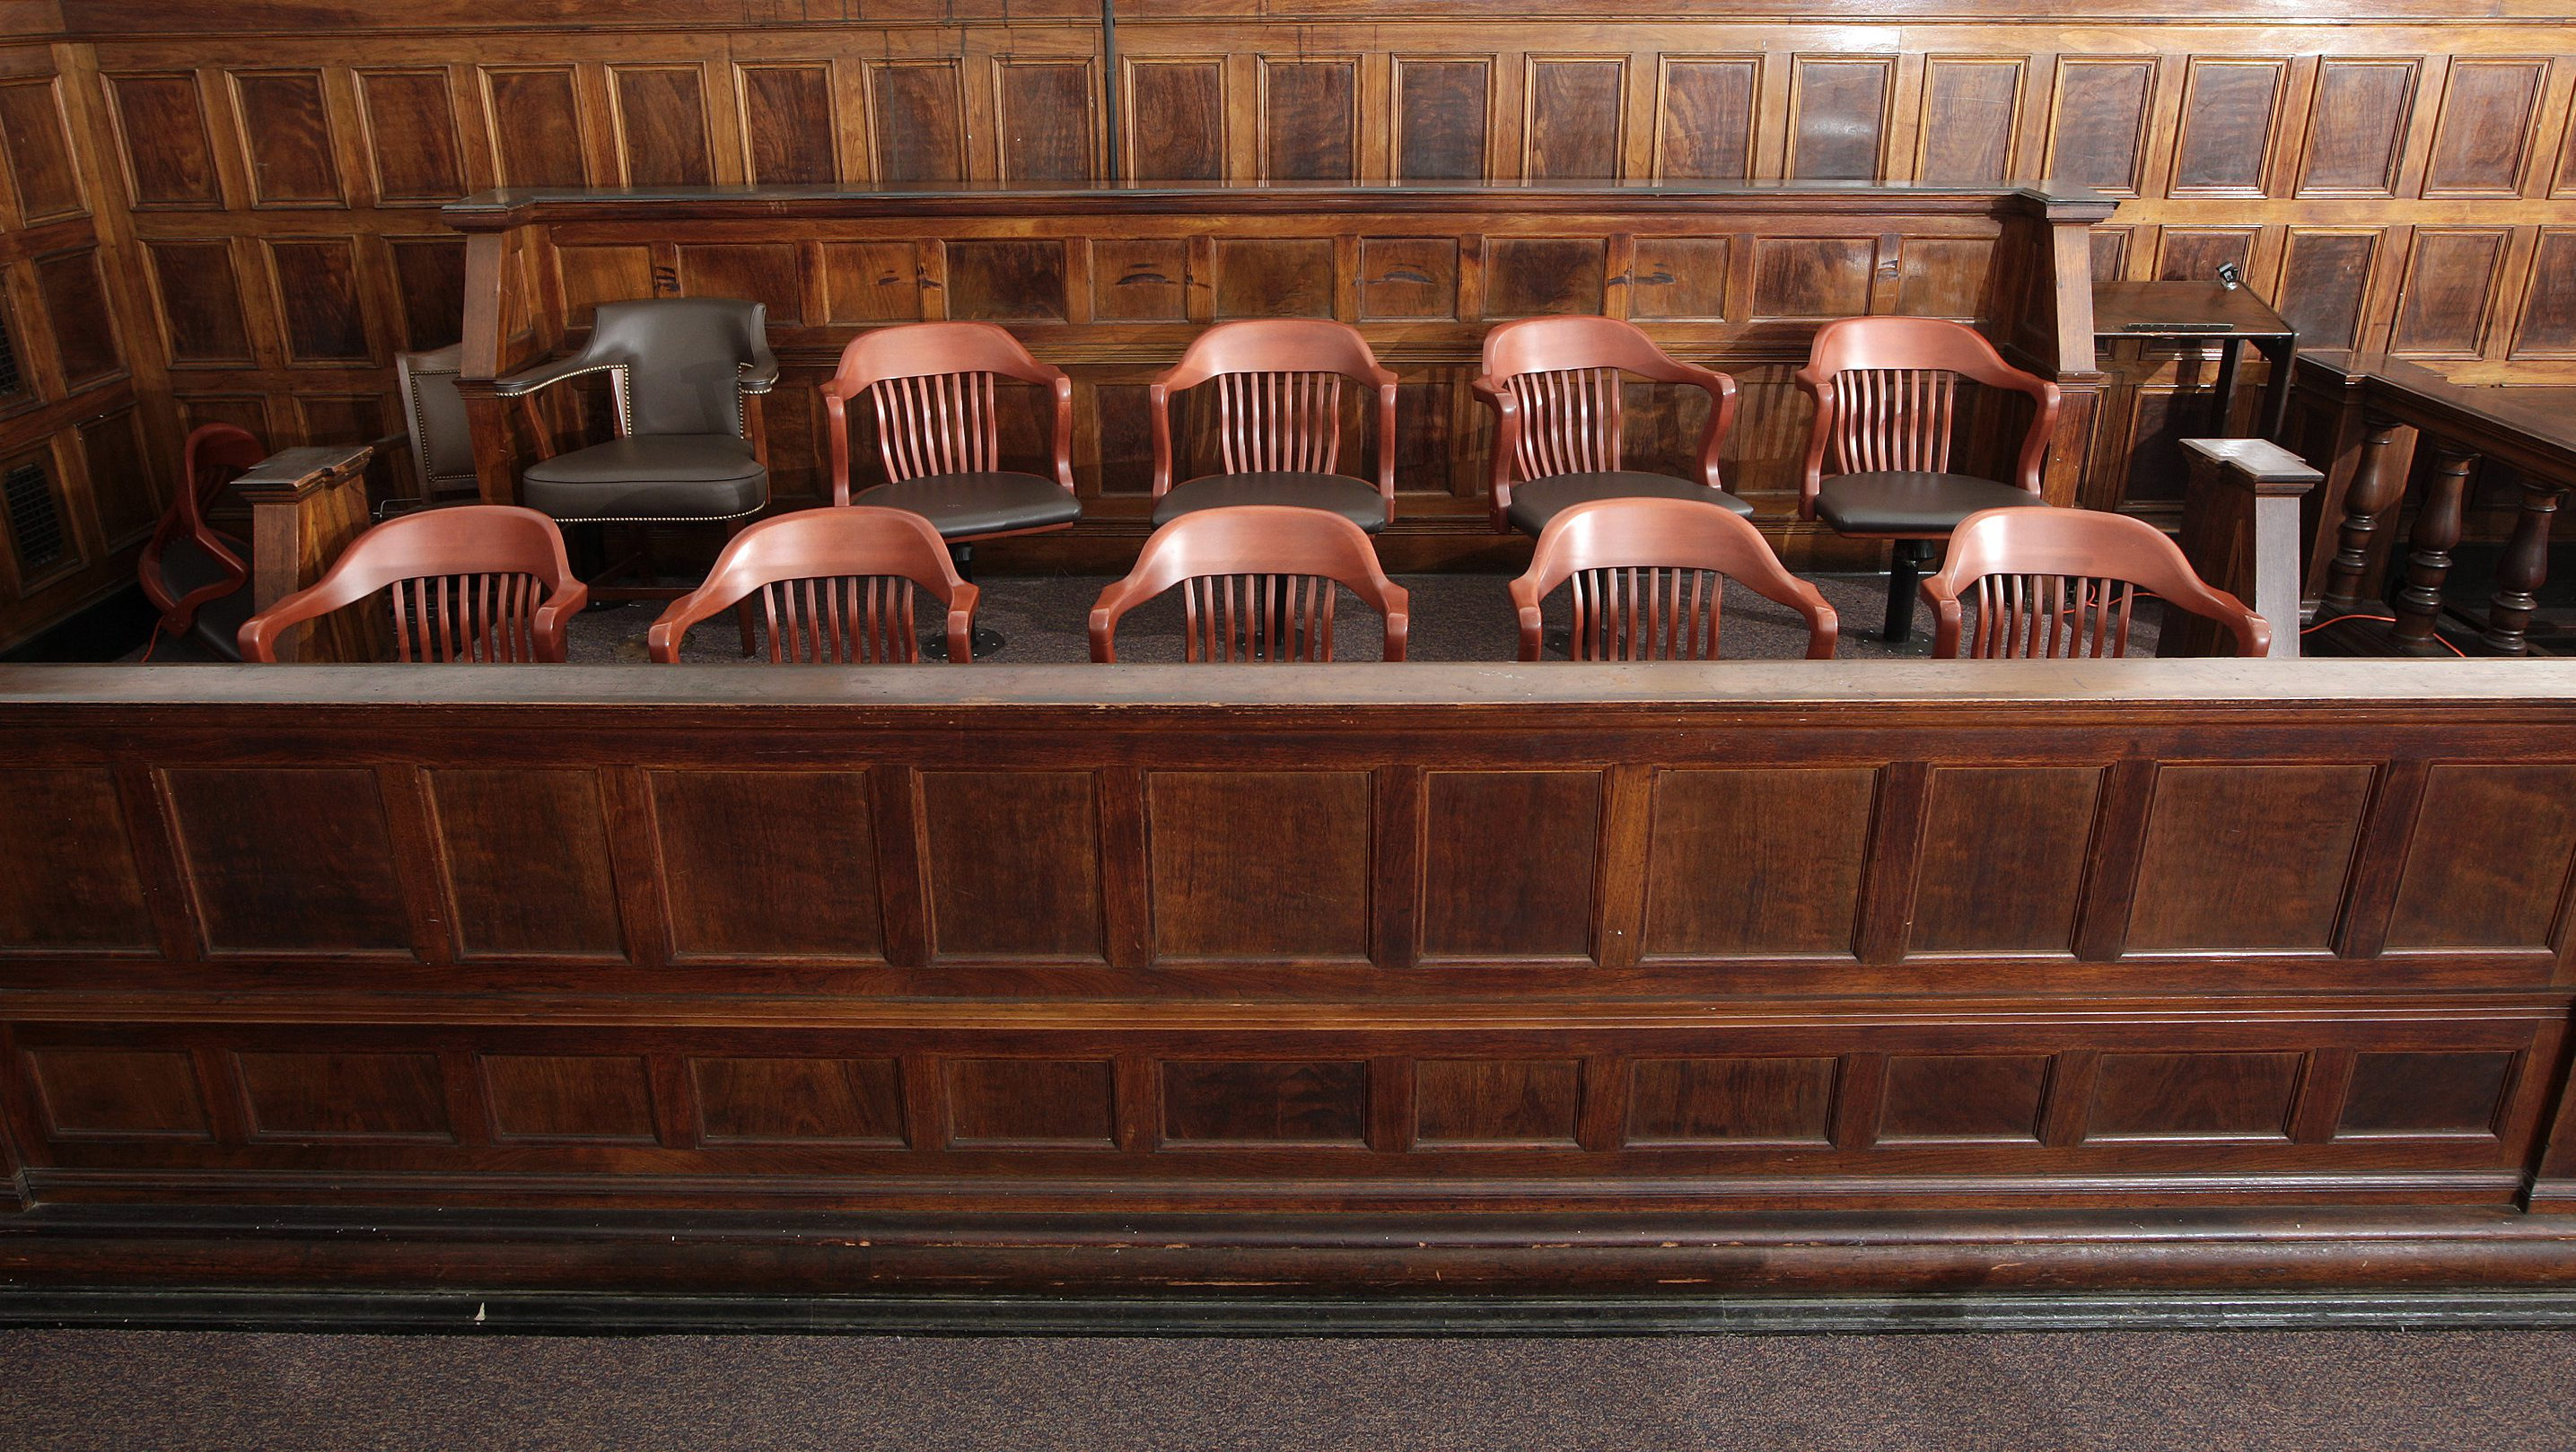 A view of the jury box in court room 422 of the New York Supreme Court